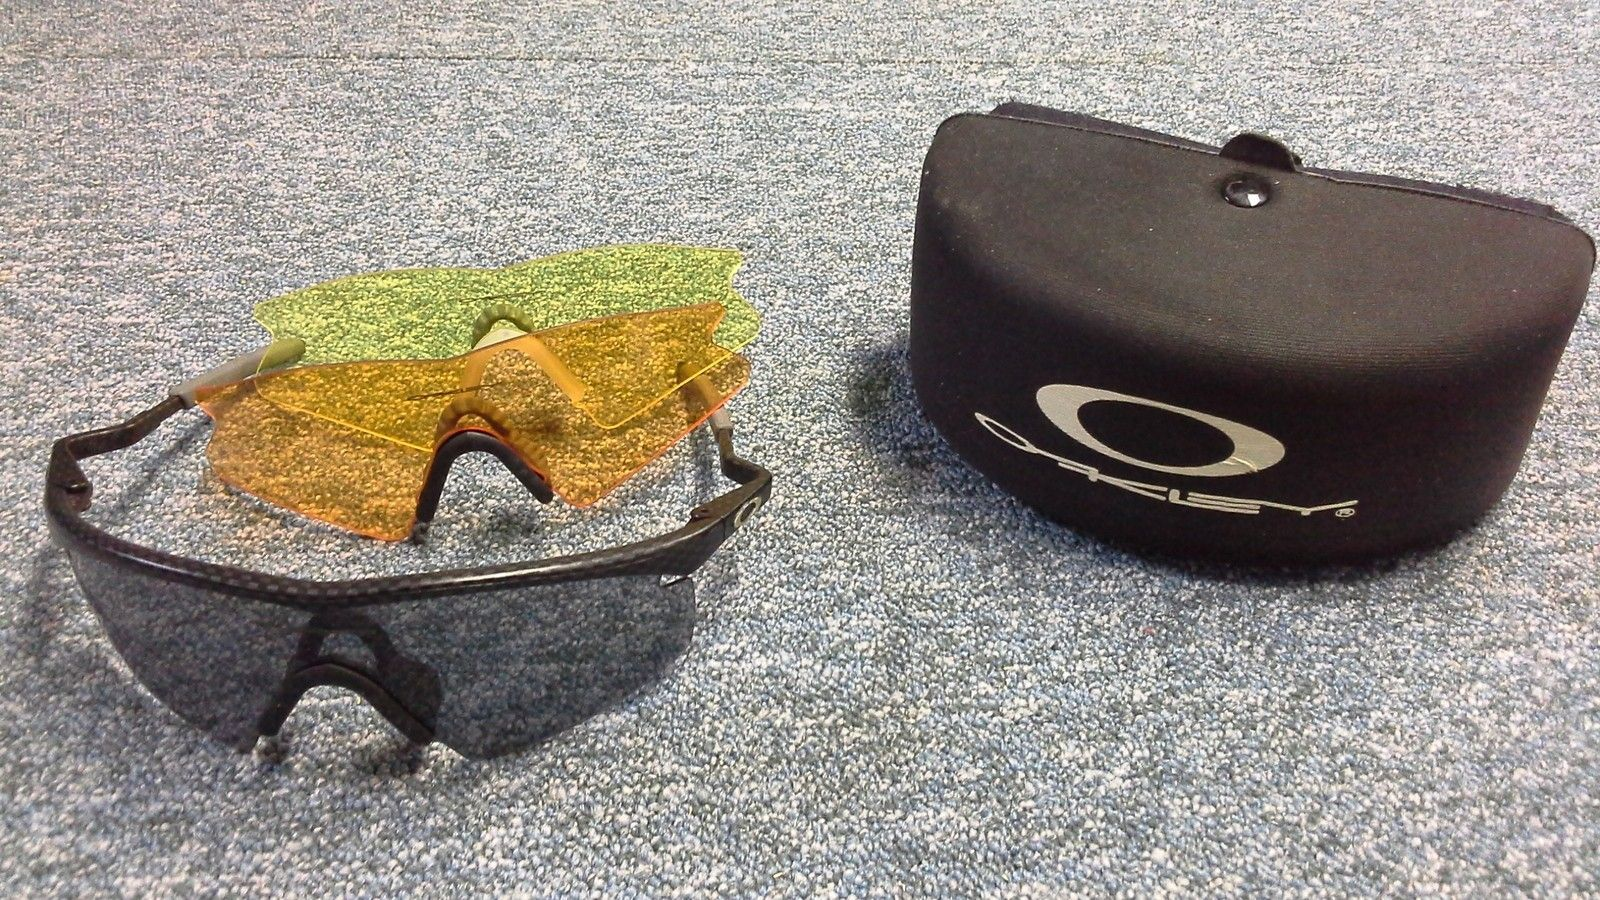 What Oakley model are these? - 20150627_120041.jpg